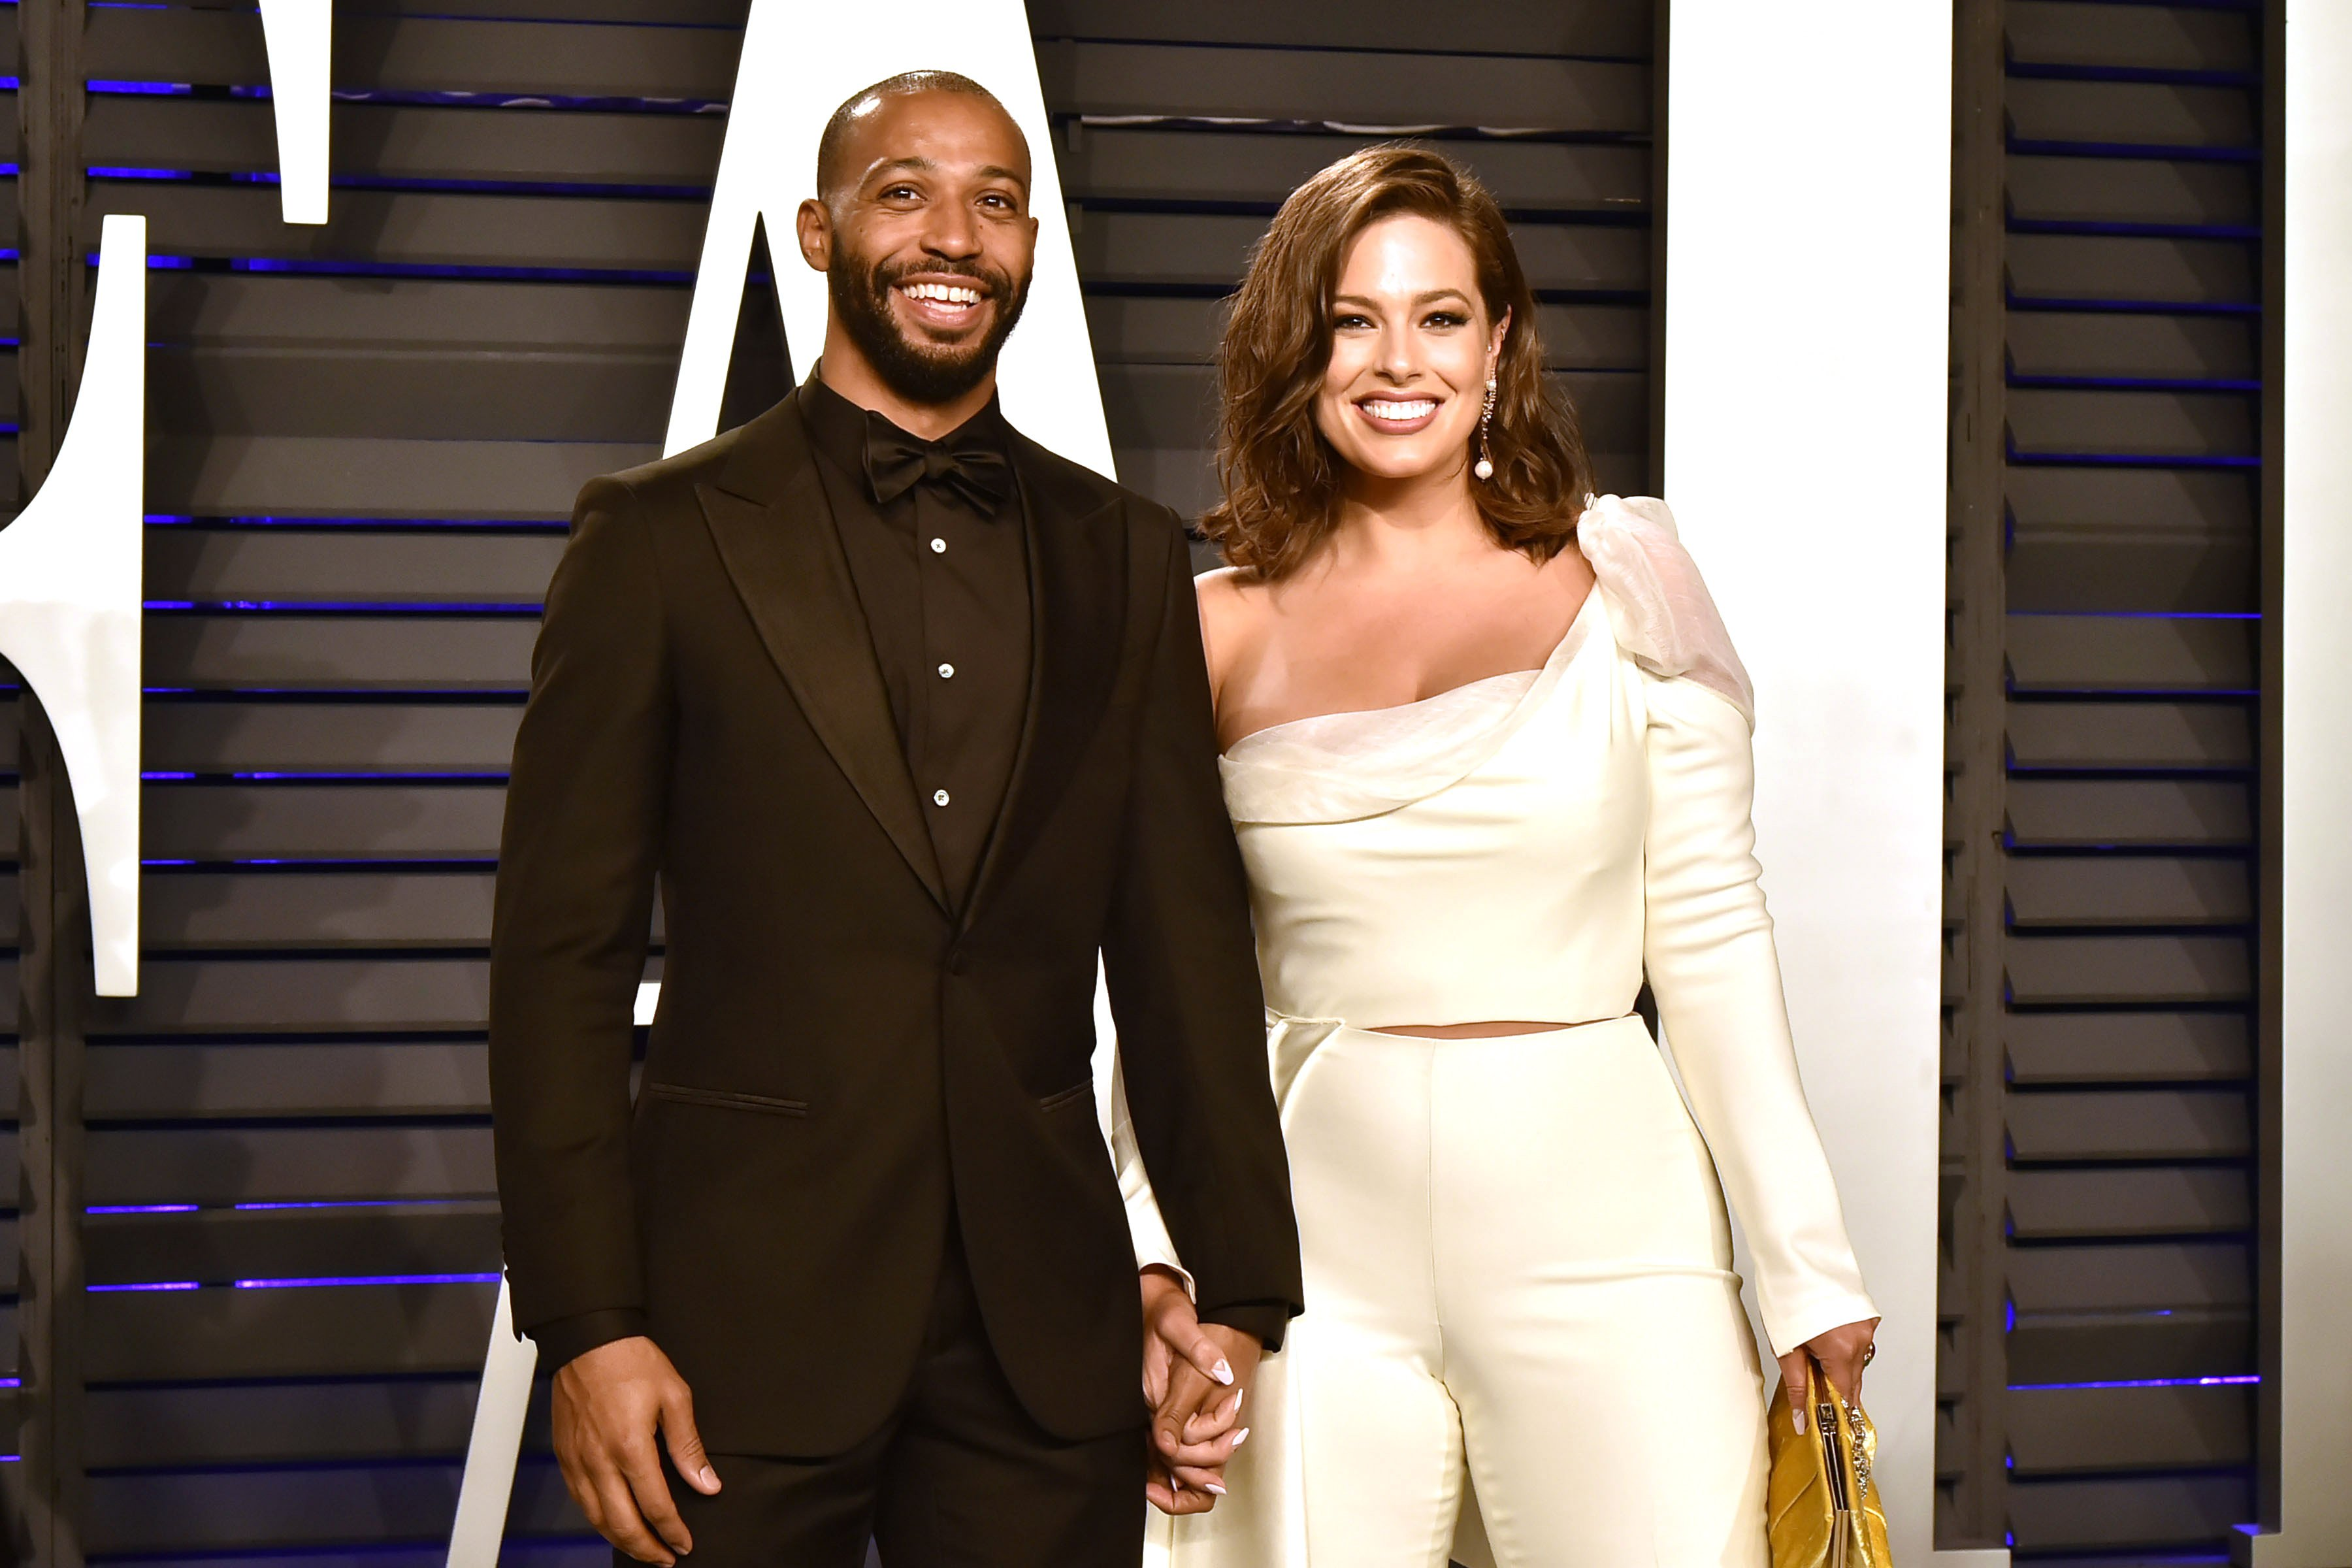 Justin Ervin and Ashley Graham attend the 2019 Vanity Fair Oscar Party on February 24, 2019, in Beverly Hills, California | Photo: Getty Images